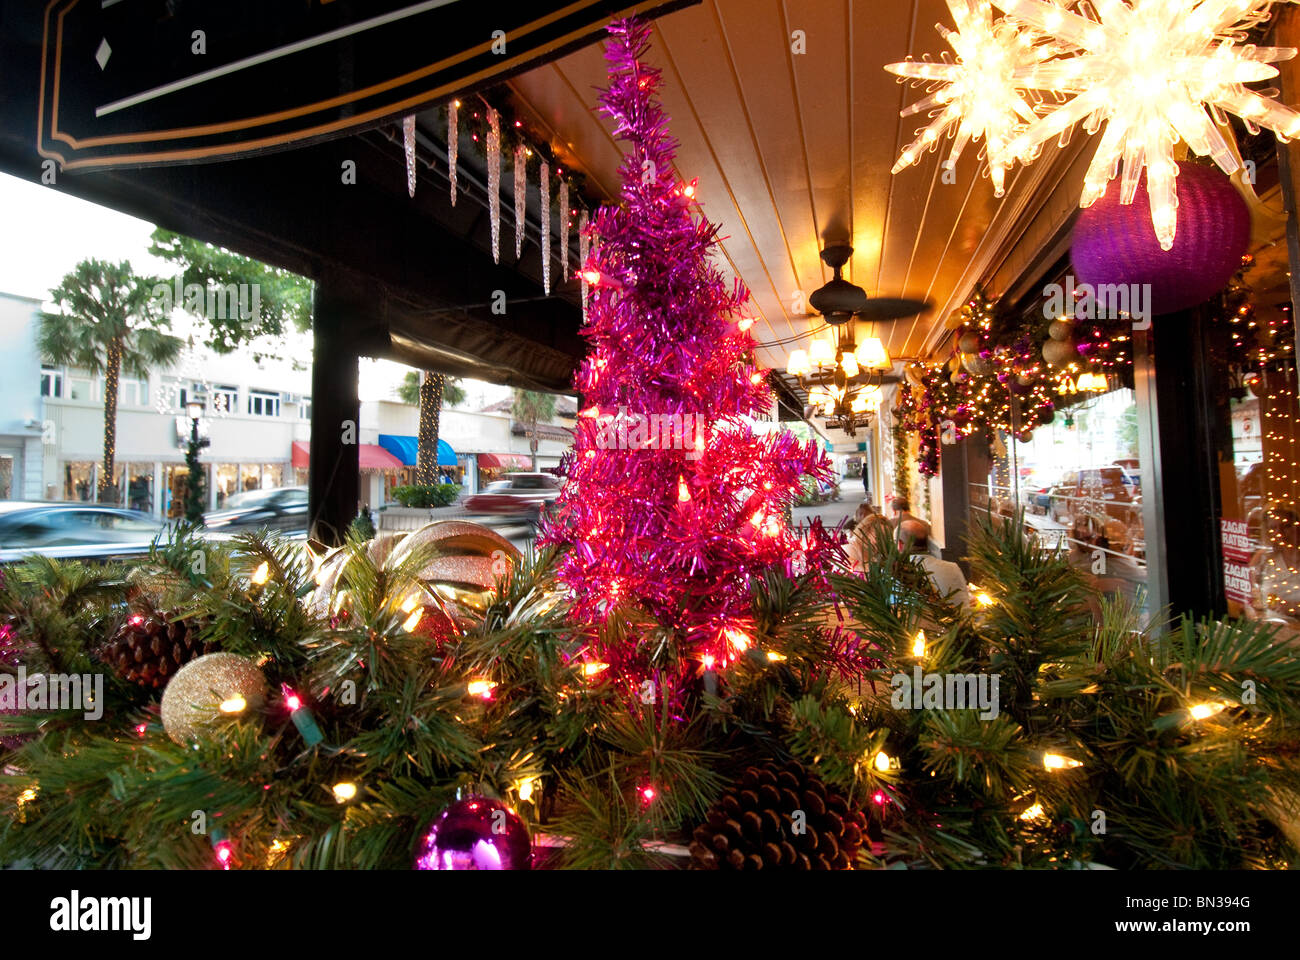 Christmas Lighting And Decorations On Las Olas Boulevard In Fort Lauderdale Florida Usa